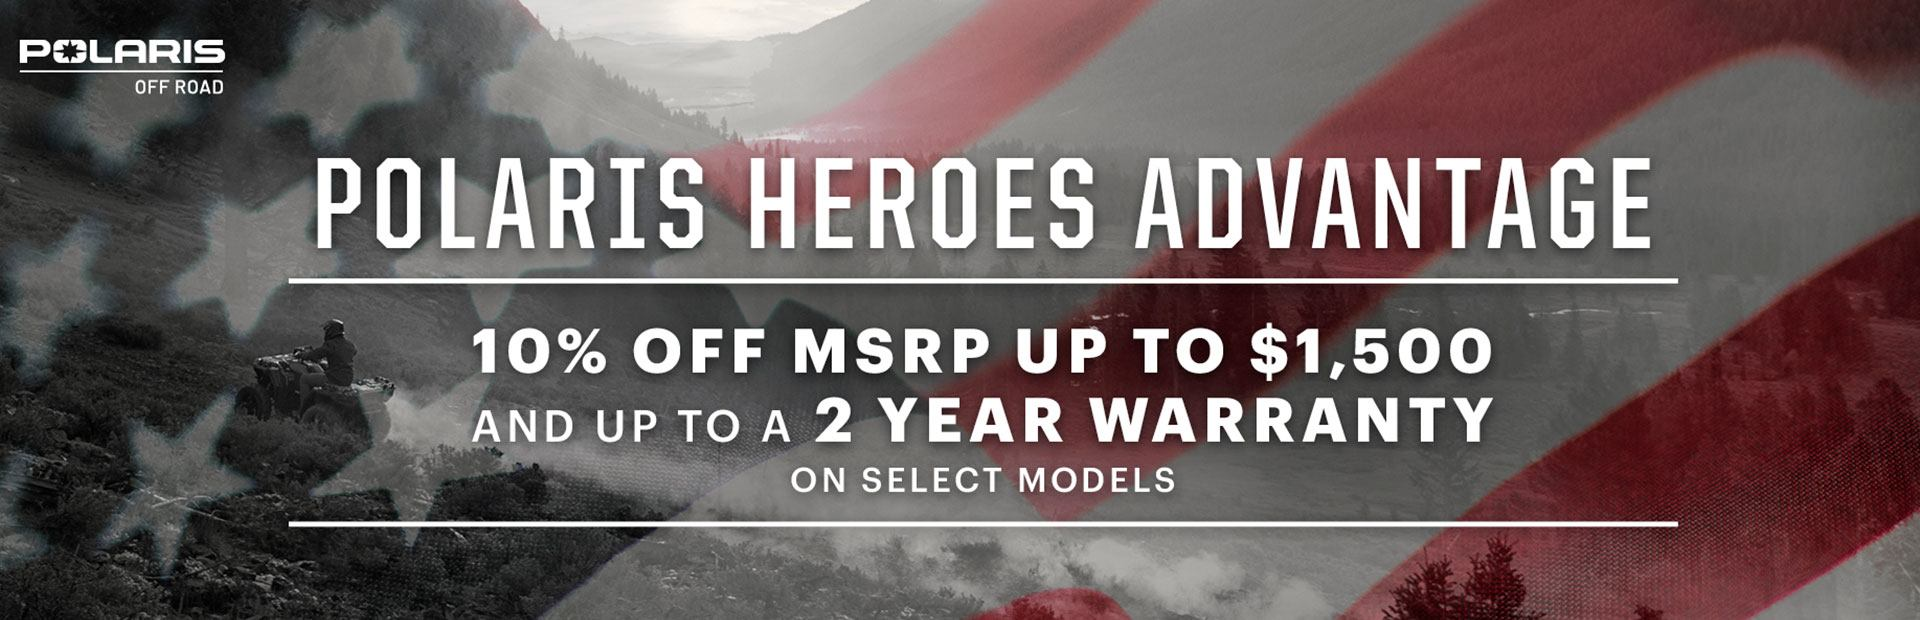 Polaris Promotion: 10% off MSRP on select models.